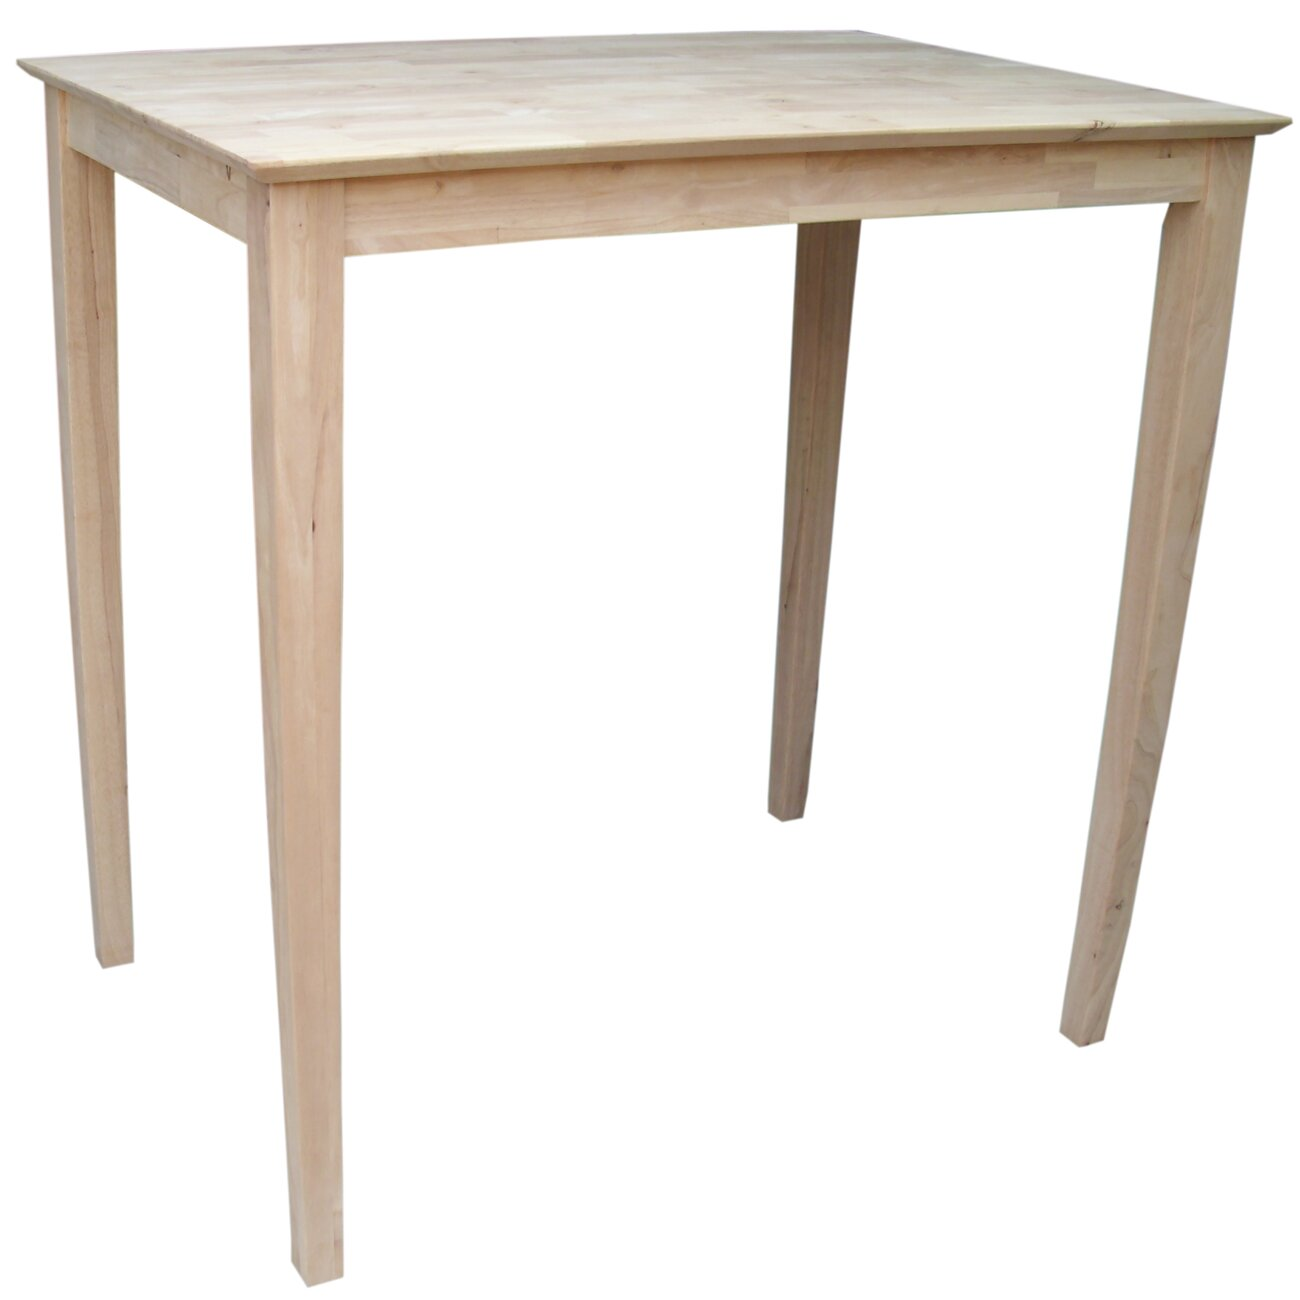 International Concepts Shaker Dining Table Reviews Wayfair